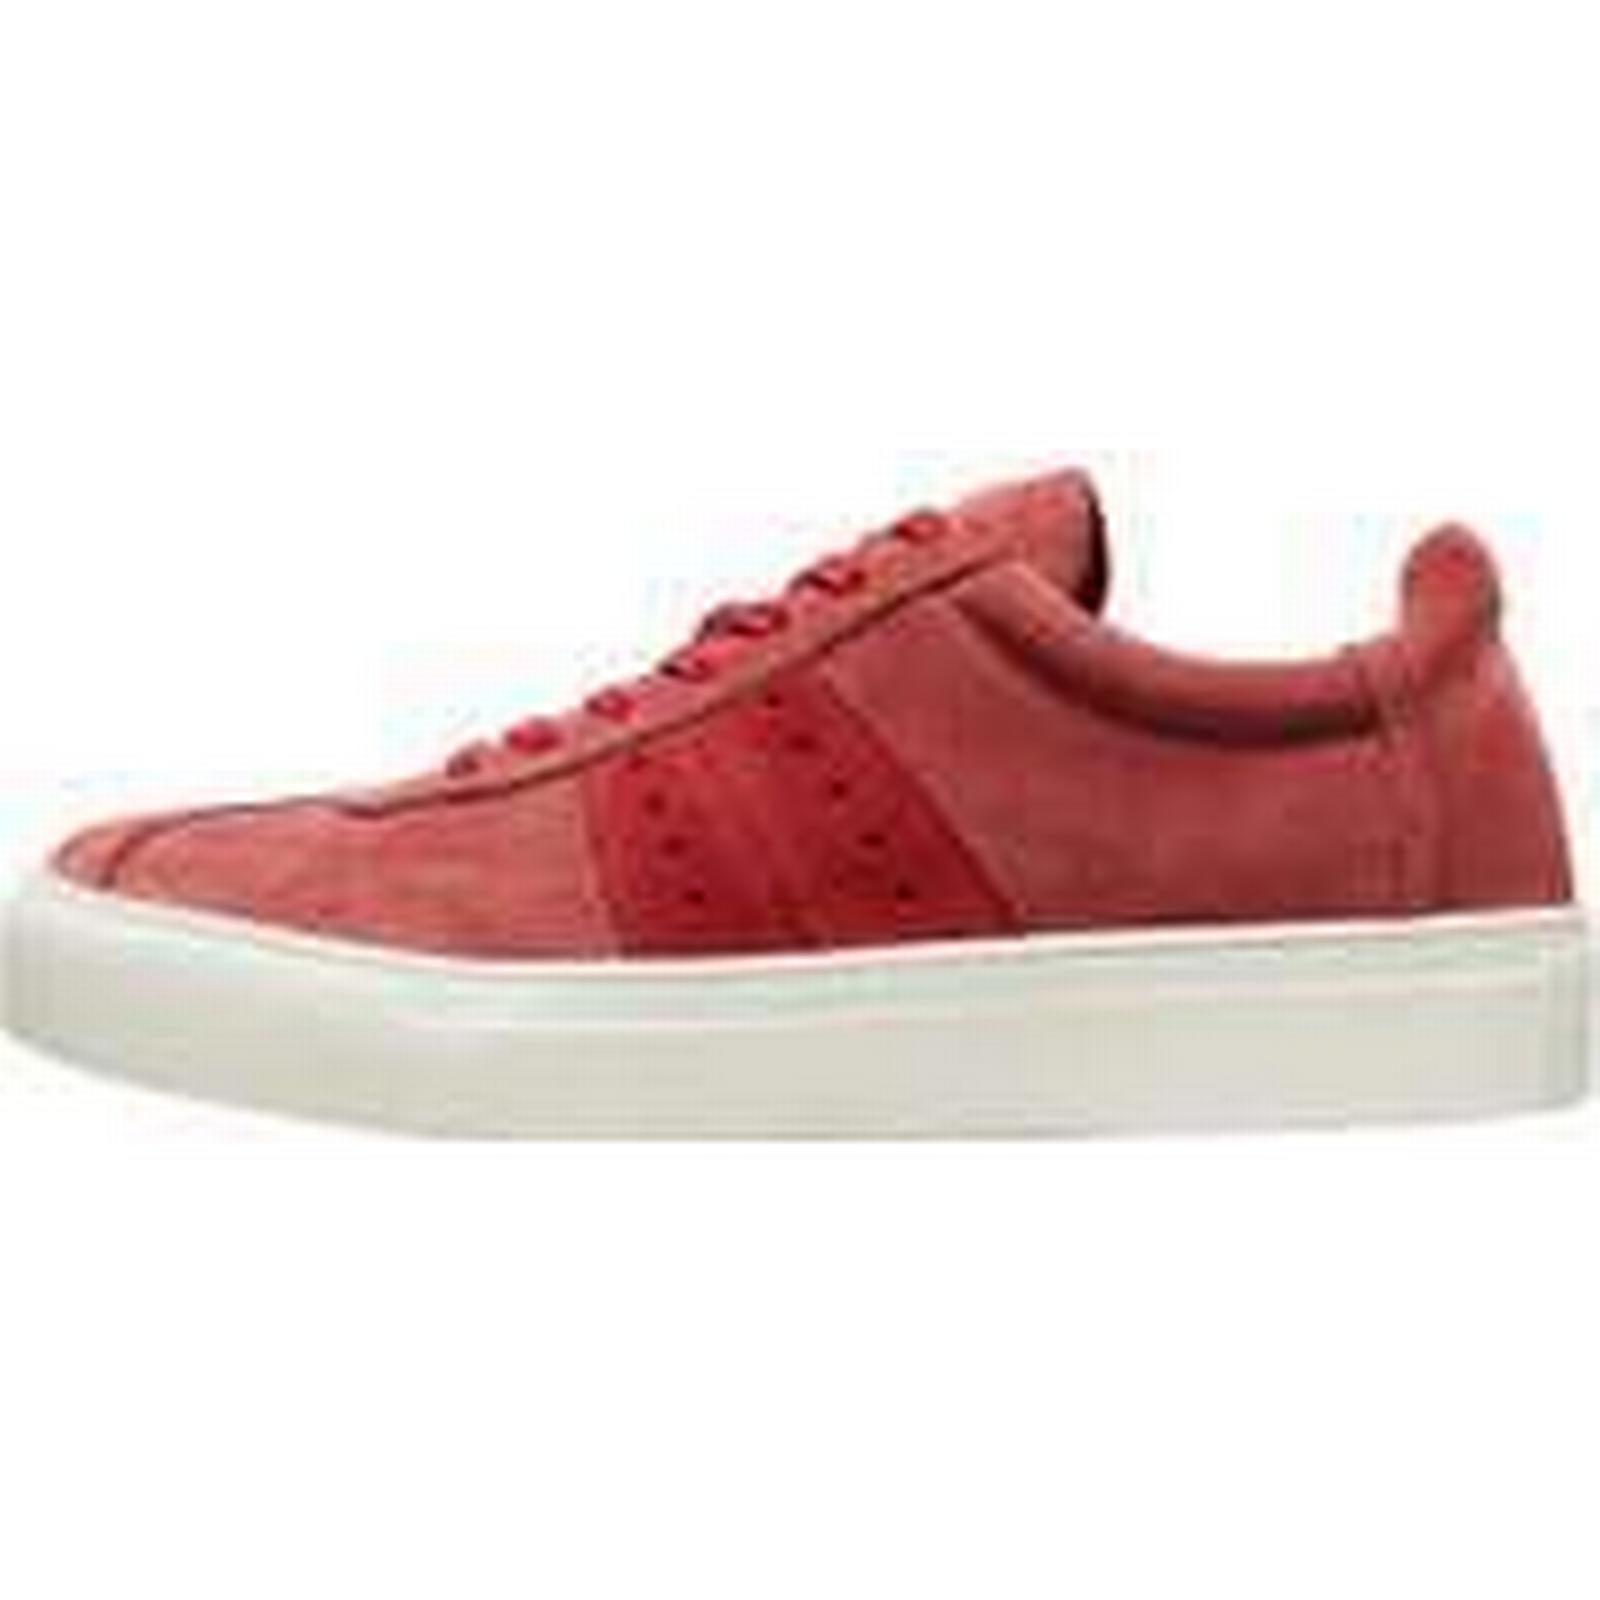 SELECTED - Suede - SELECTED Sneakers Women Red (36) 0383e1